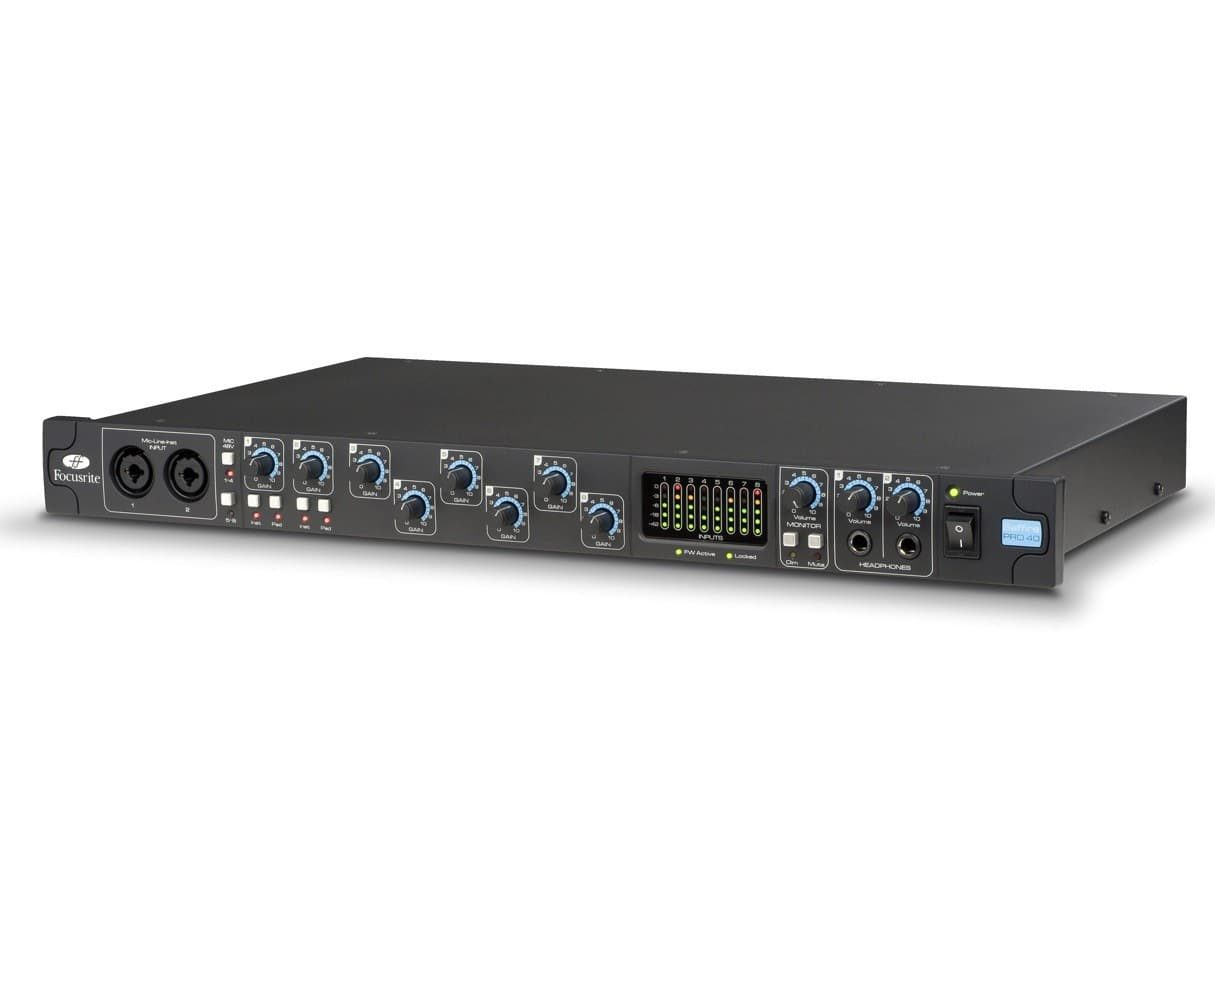 Focusrite Saffire Pro 40 Firewire Interface (Thunderbolt 2 compatible) - $199.99 (reg $399.99)